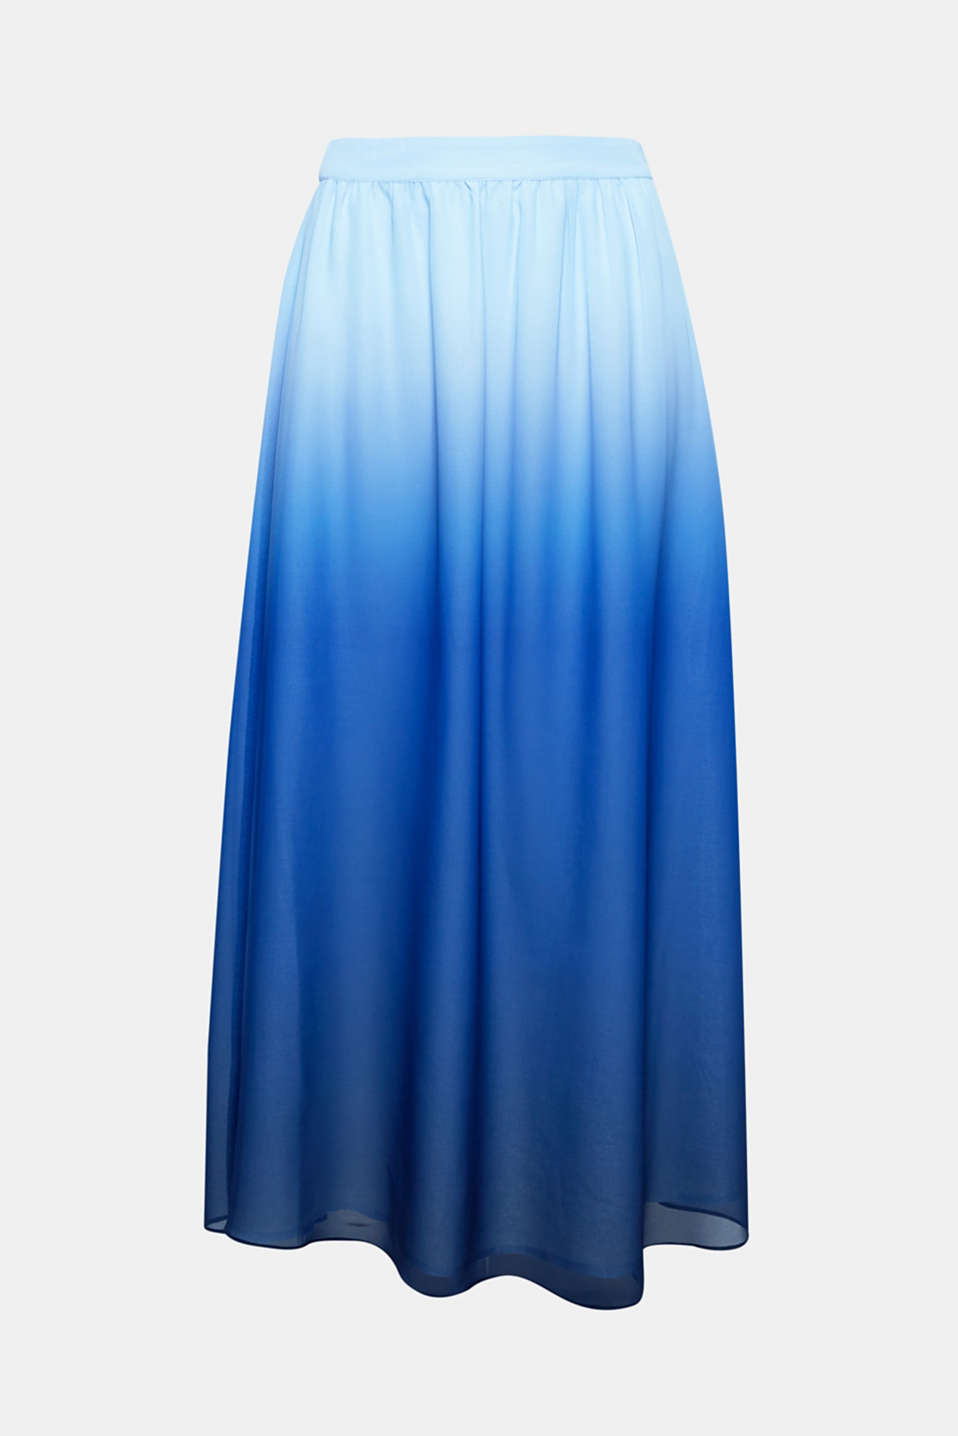 Delicate chiffon with attractive colour gradation makes this swirling maxi skirt a special highlight for lovely evenings and festivities!